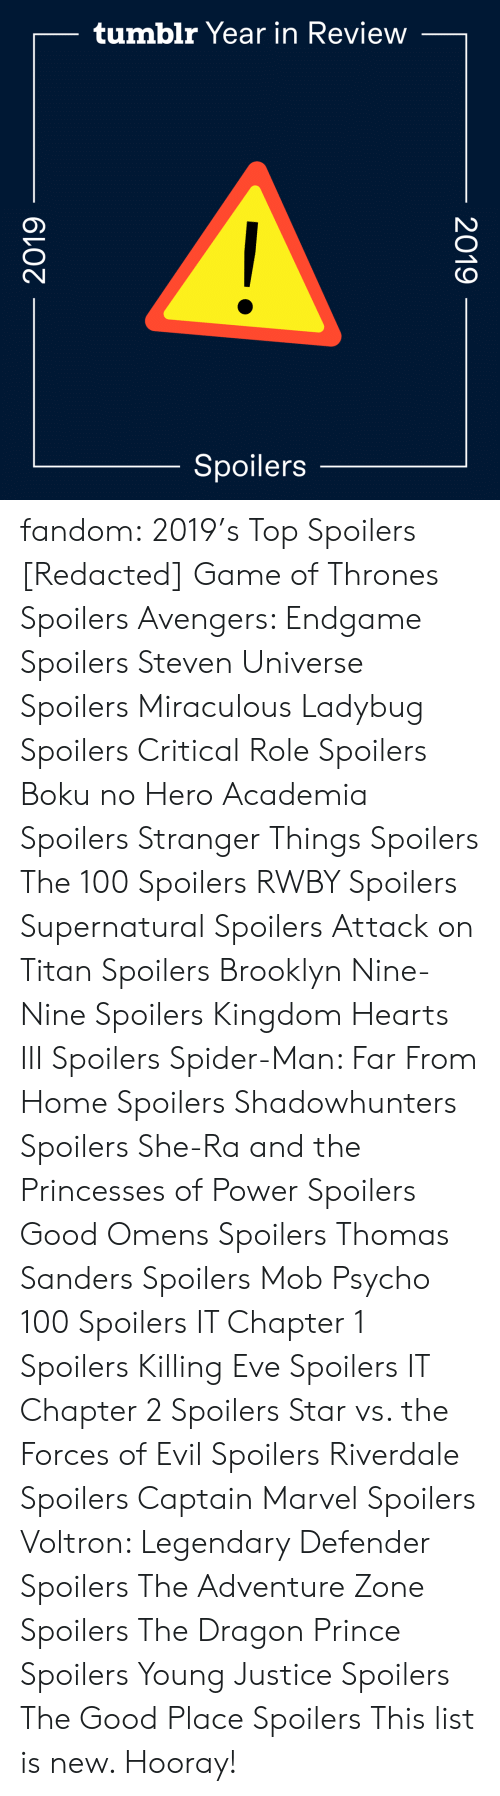 Nine Nine: tumblr Year in Review  Spoilers  2019  2019 fandom:  2019's Top Spoilers  [Redacted]  Game of Thrones Spoilers  Avengers: Endgame Spoilers  Steven Universe Spoilers  Miraculous Ladybug Spoilers  Critical Role Spoilers  Boku no Hero Academia Spoilers  Stranger Things Spoilers  The 100 Spoilers  RWBY Spoilers  Supernatural Spoilers  Attack on Titan Spoilers  Brooklyn Nine-Nine Spoilers  Kingdom Hearts III Spoilers  Spider-Man: Far From Home Spoilers  Shadowhunters Spoilers  She-Ra and the Princesses of Power Spoilers  Good Omens Spoilers  Thomas Sanders Spoilers  Mob Psycho 100 Spoilers  IT Chapter 1 Spoilers  Killing Eve Spoilers  IT Chapter 2 Spoilers  Star vs. the Forces of Evil Spoilers  Riverdale Spoilers  Captain Marvel Spoilers  Voltron: Legendary Defender Spoilers  The Adventure Zone Spoilers  The Dragon Prince Spoilers  Young Justice Spoilers  The Good Place Spoilers This list is new. Hooray!